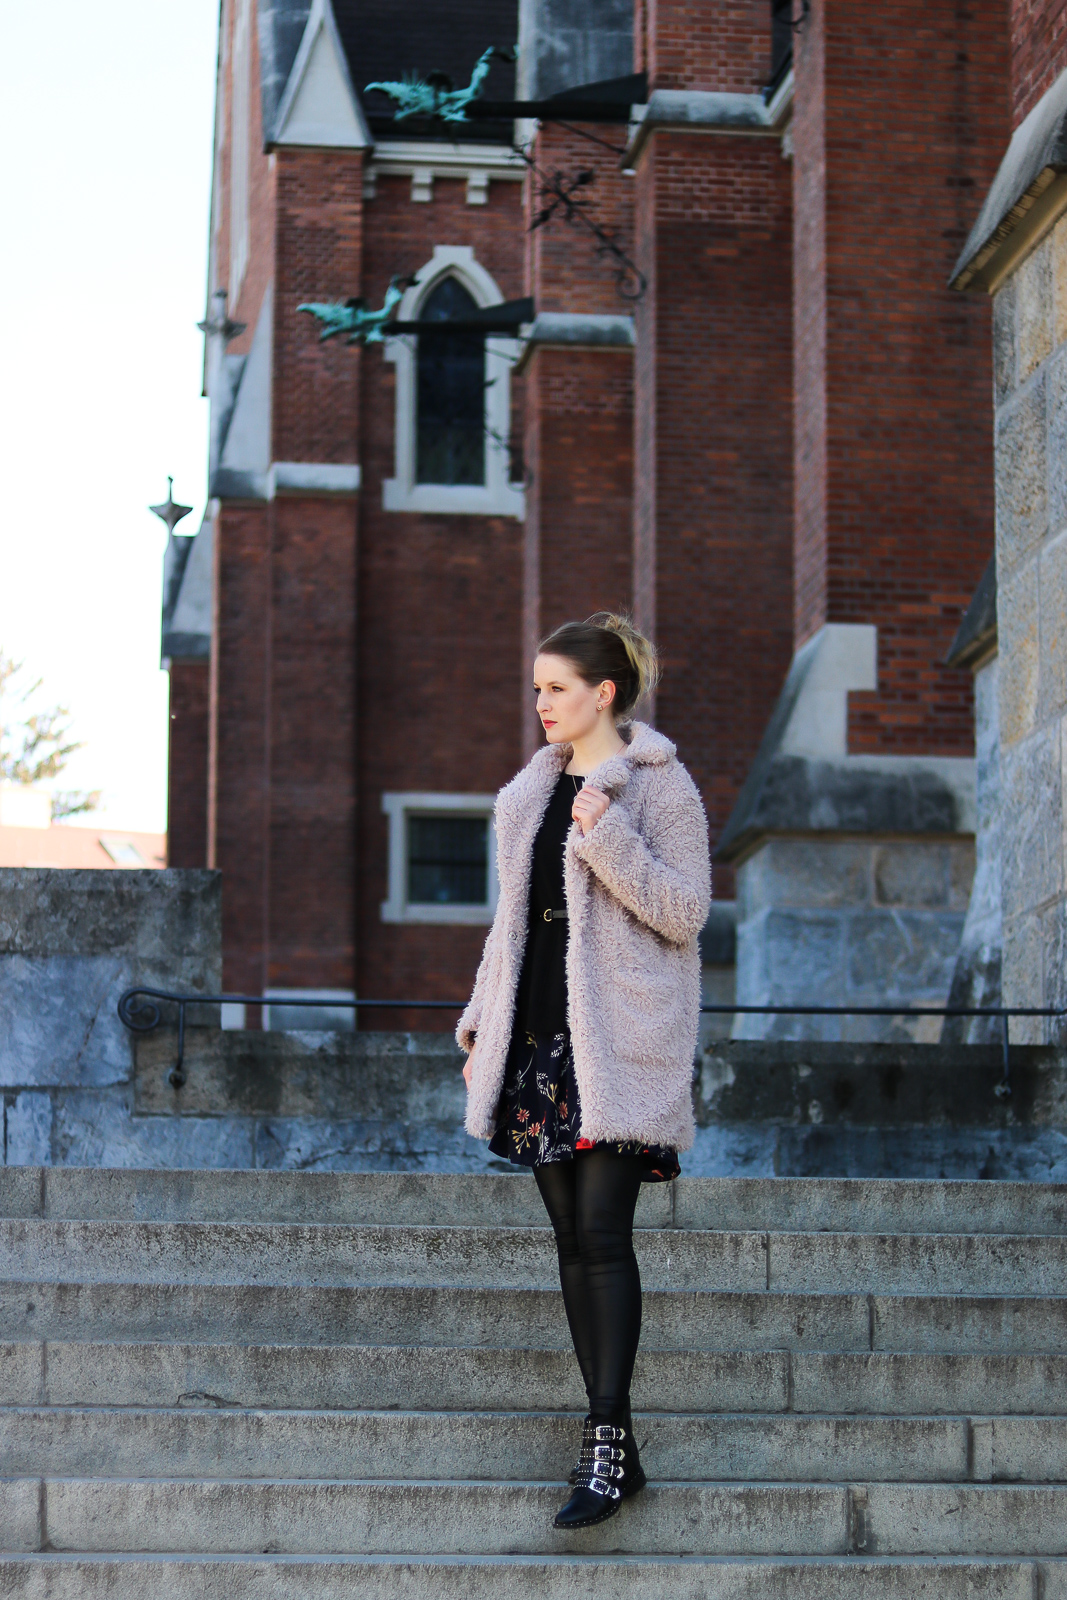 Fashion Lookbook Winter - winterliche Outfit Kombinationen - Winter Looks - Outfits für den Winter - Winter Mode Trends - Fashionladyloves by Tamara Wagner - Mode Blog Fashion Blogger aus Graz Österreich